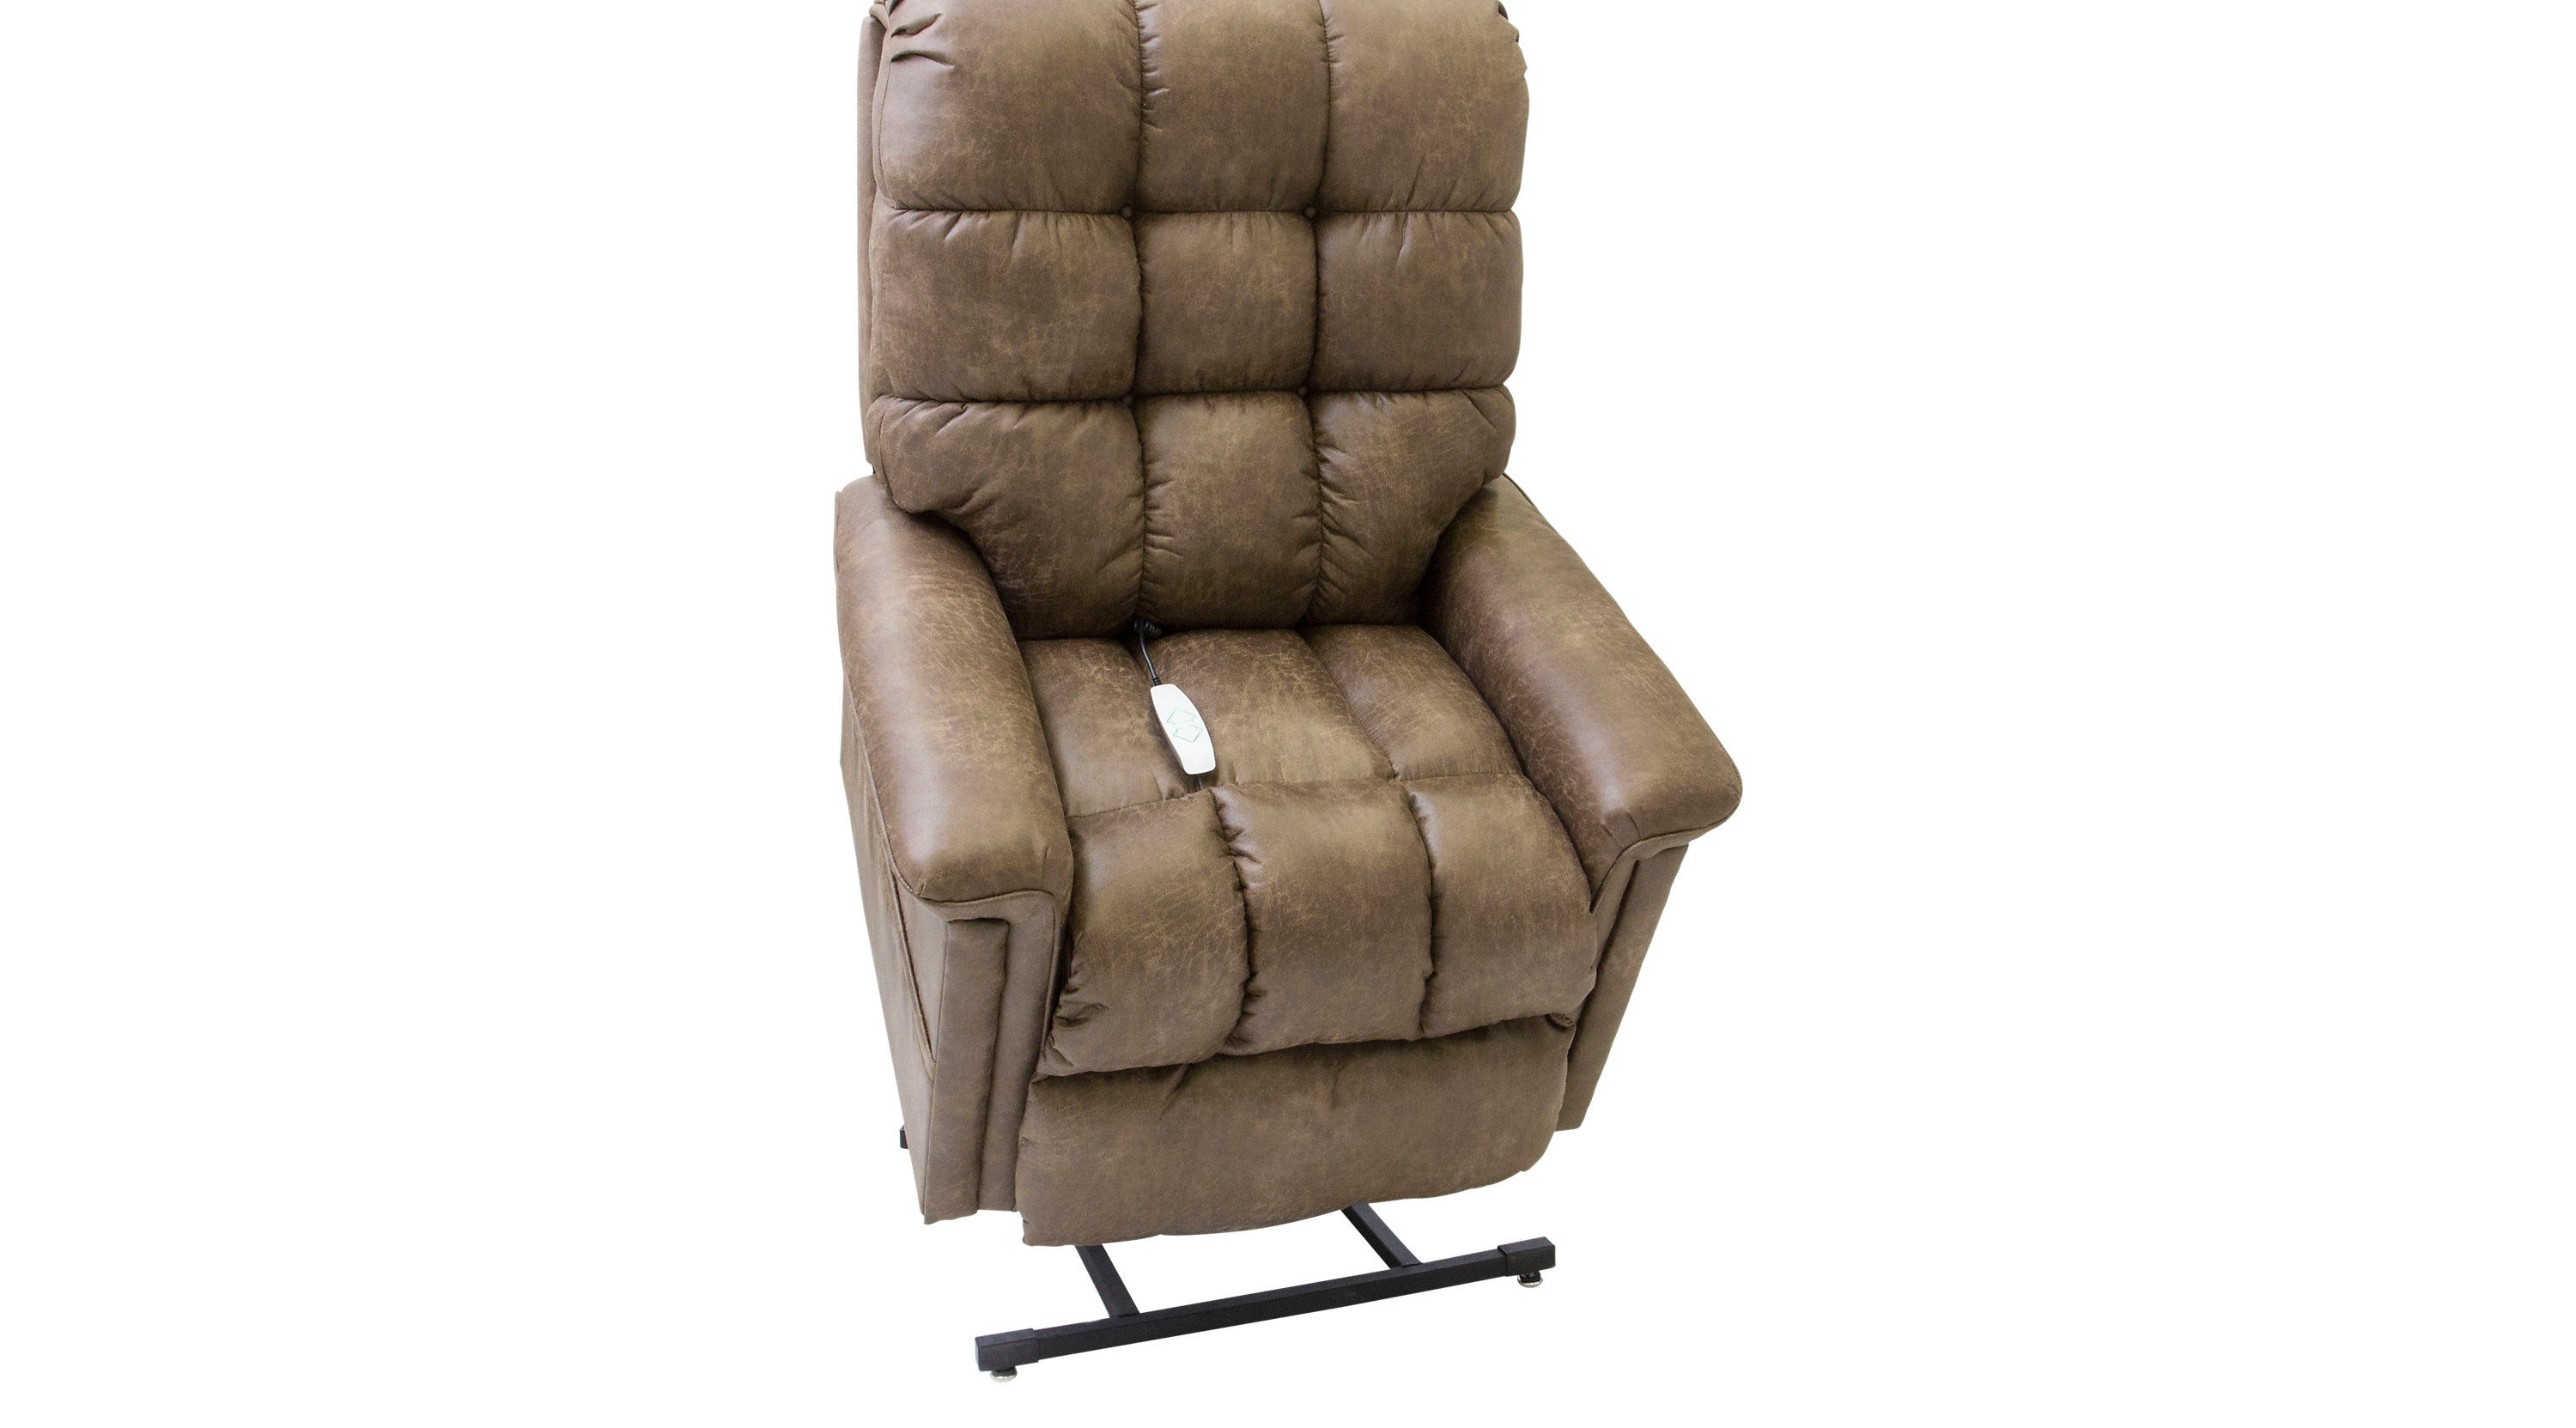 Lift Chairs Power Lift Recliners